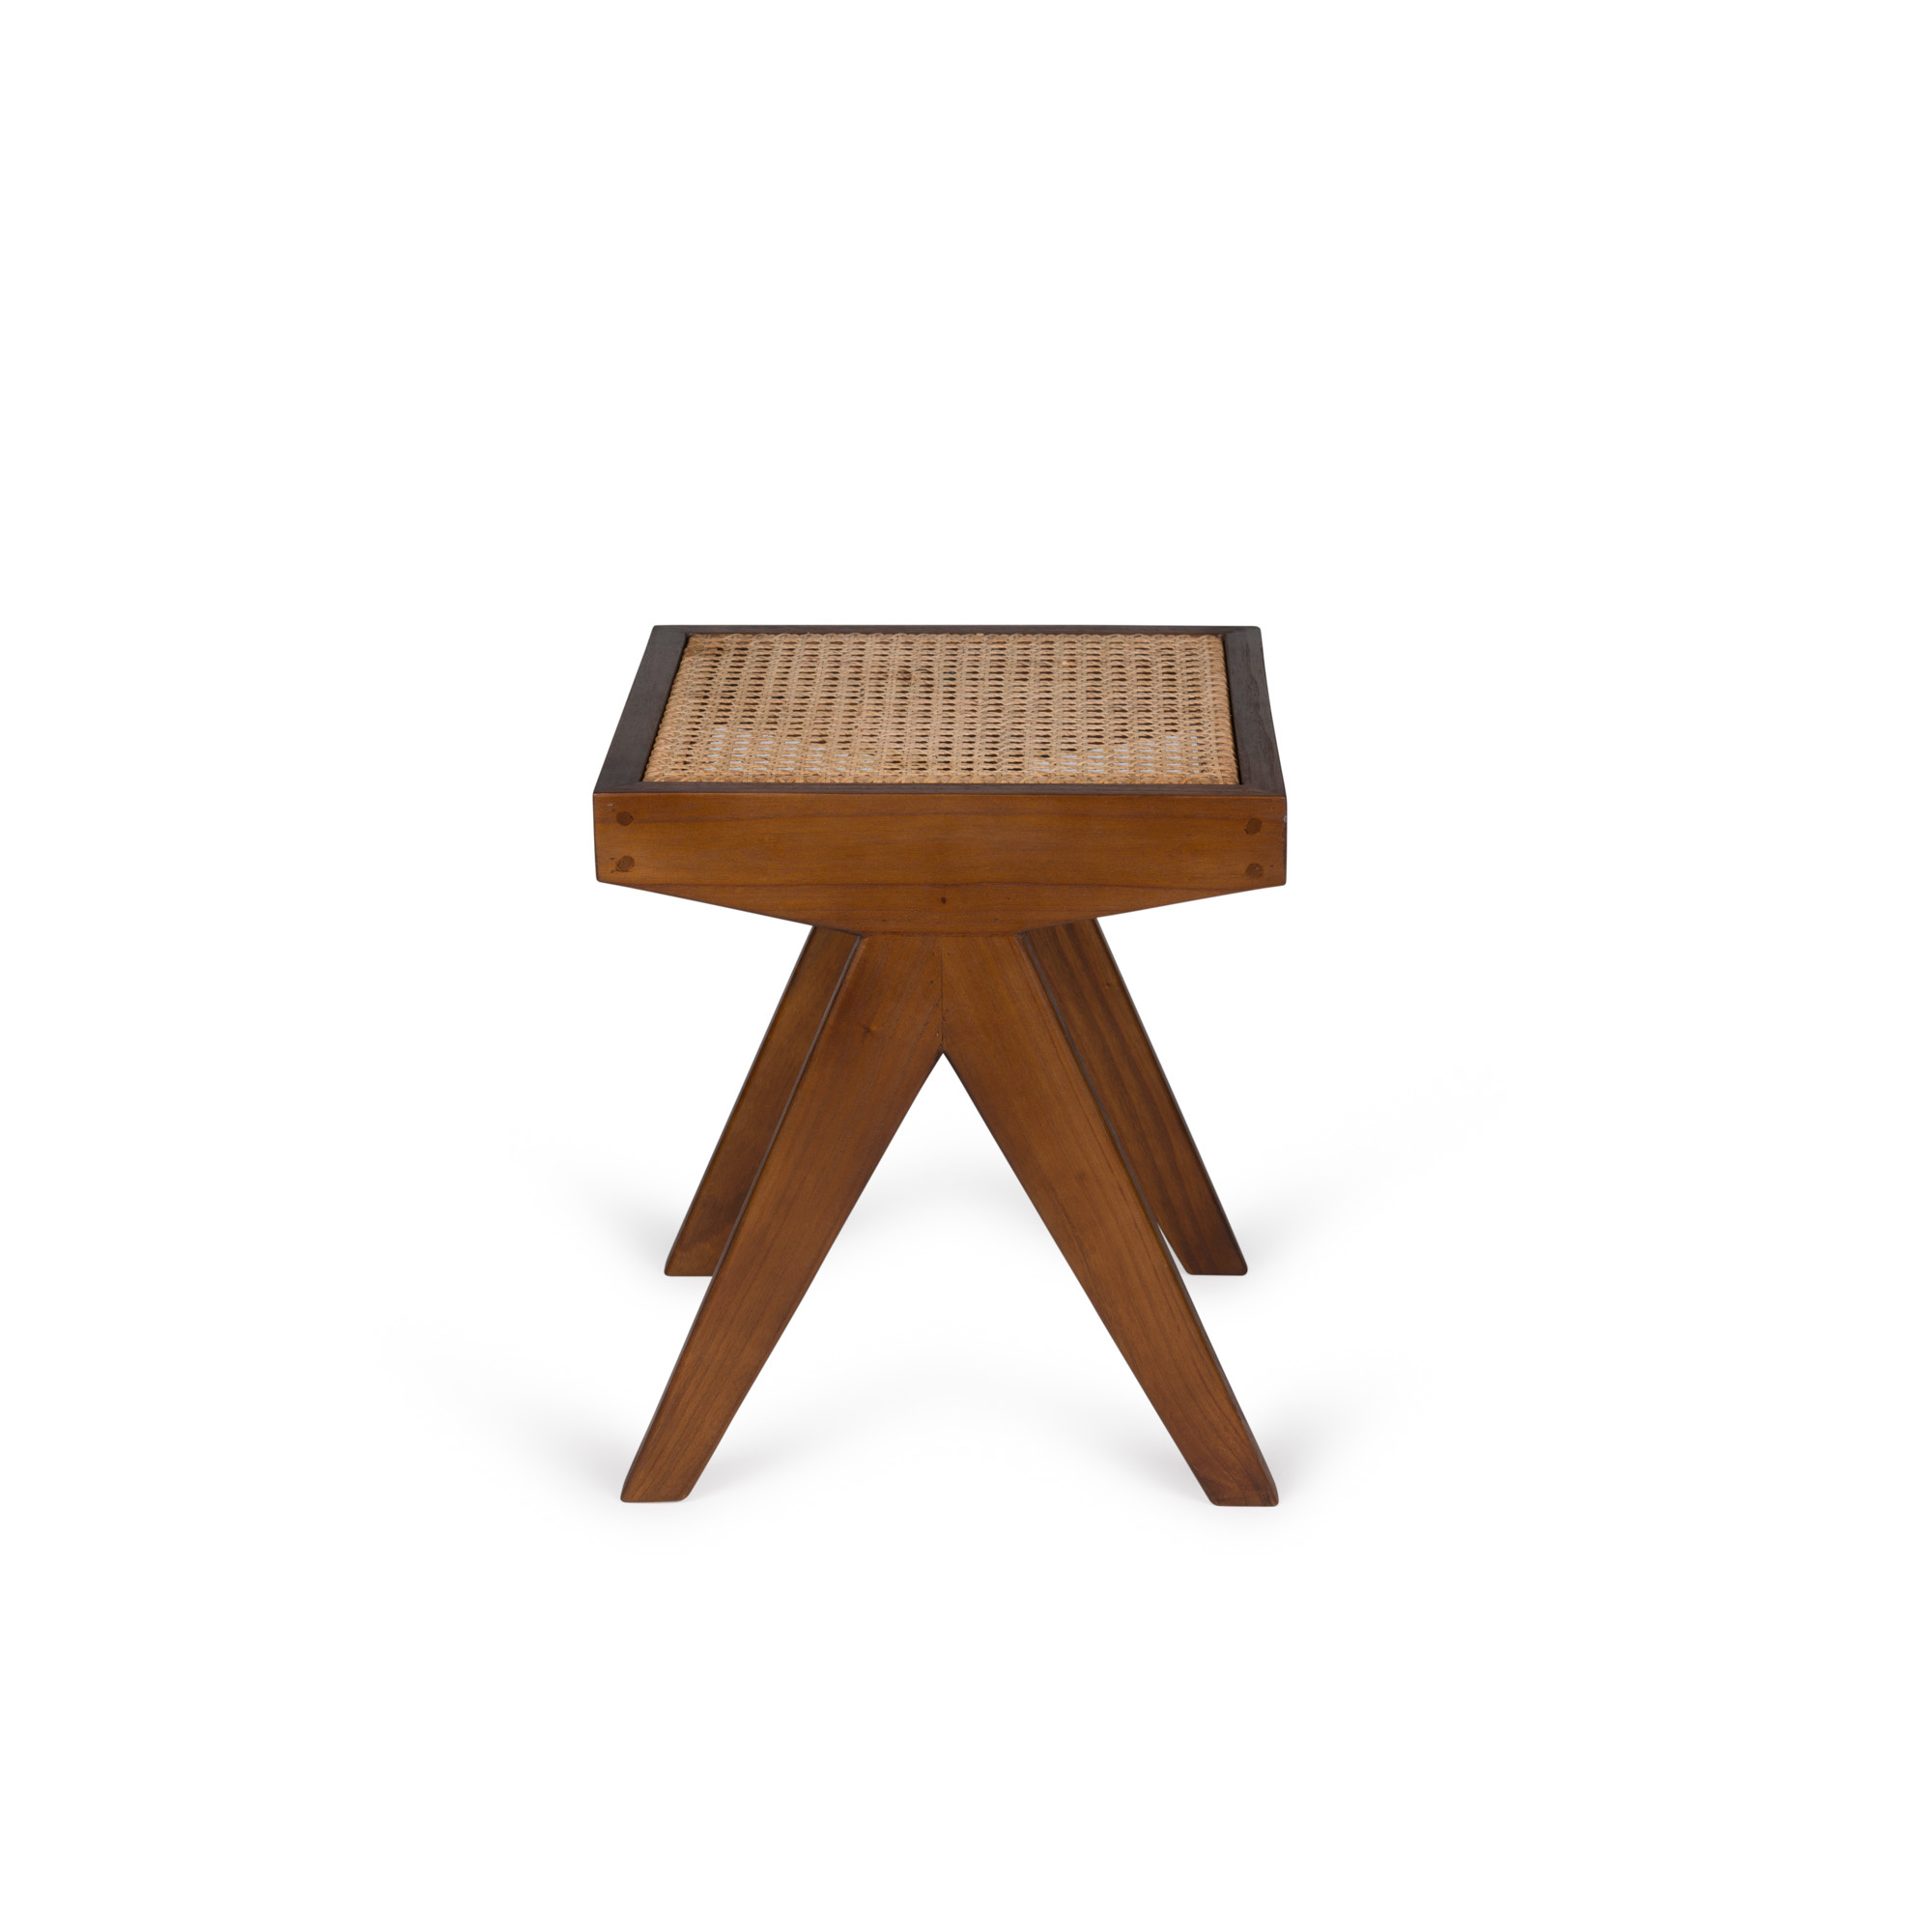 Bench / B.T.H. Flats 1 - Darkened Teak-2